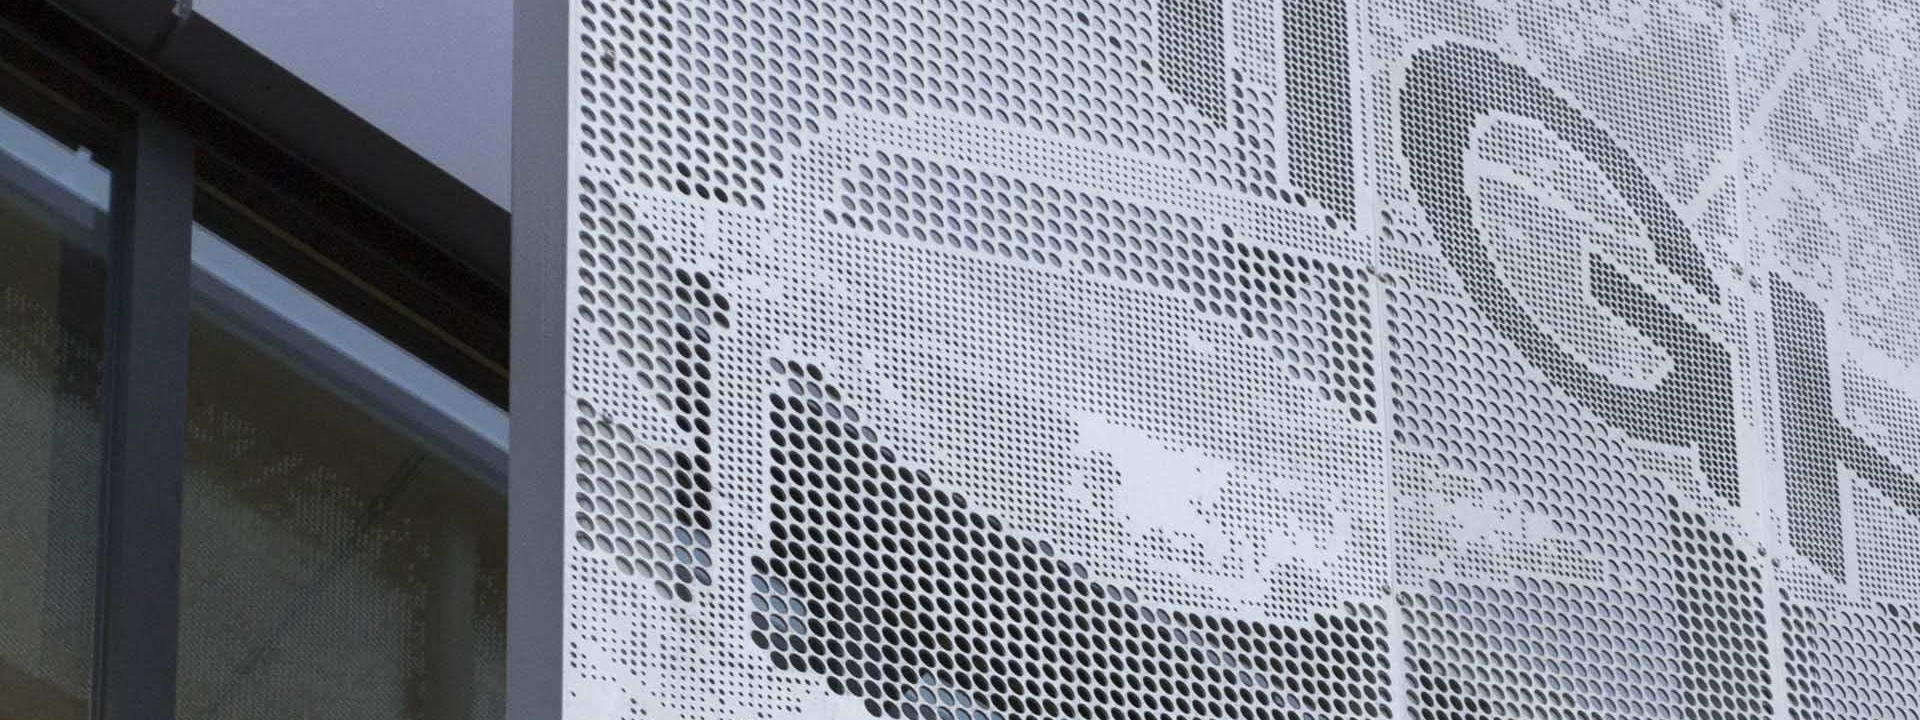 Photo detail of the perforated metal signage for Highland Park Community Center